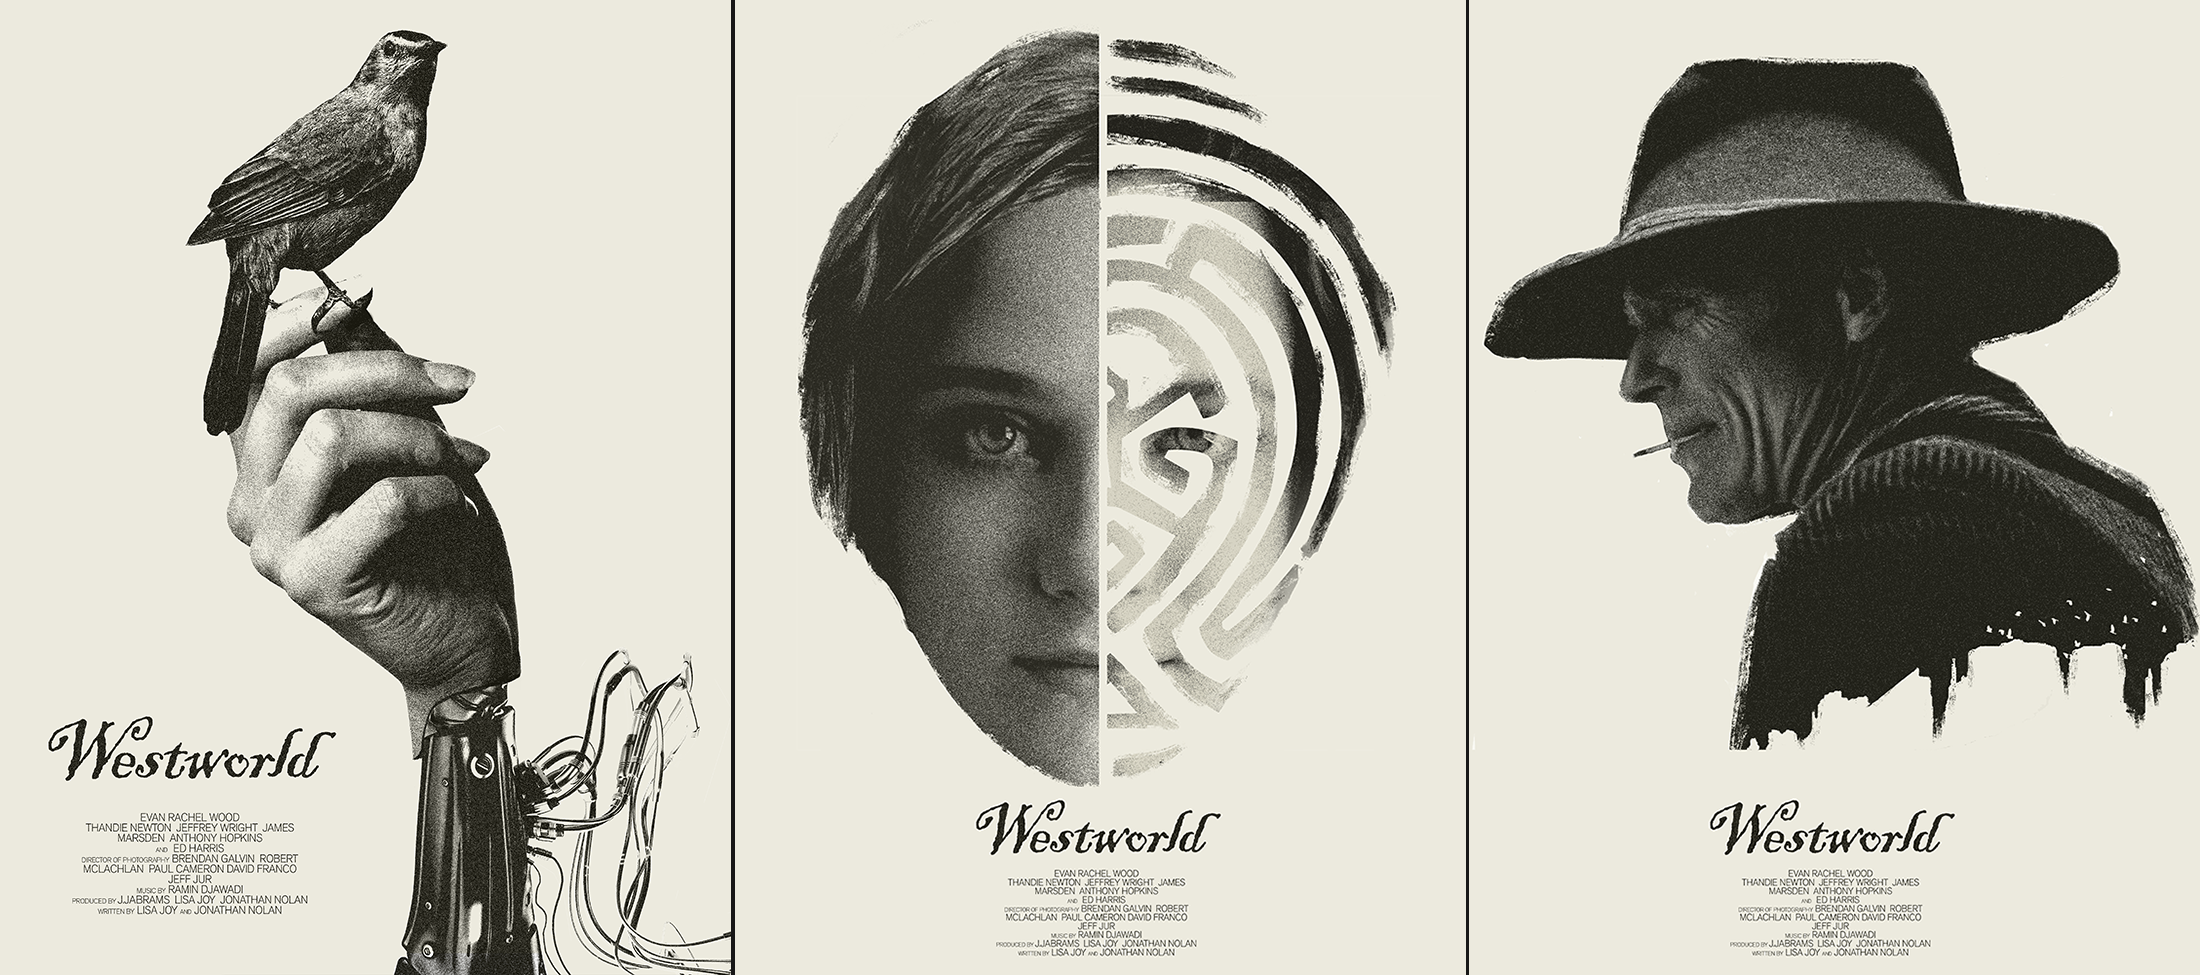 I made some fan posters for Westworld westworld 2200x975